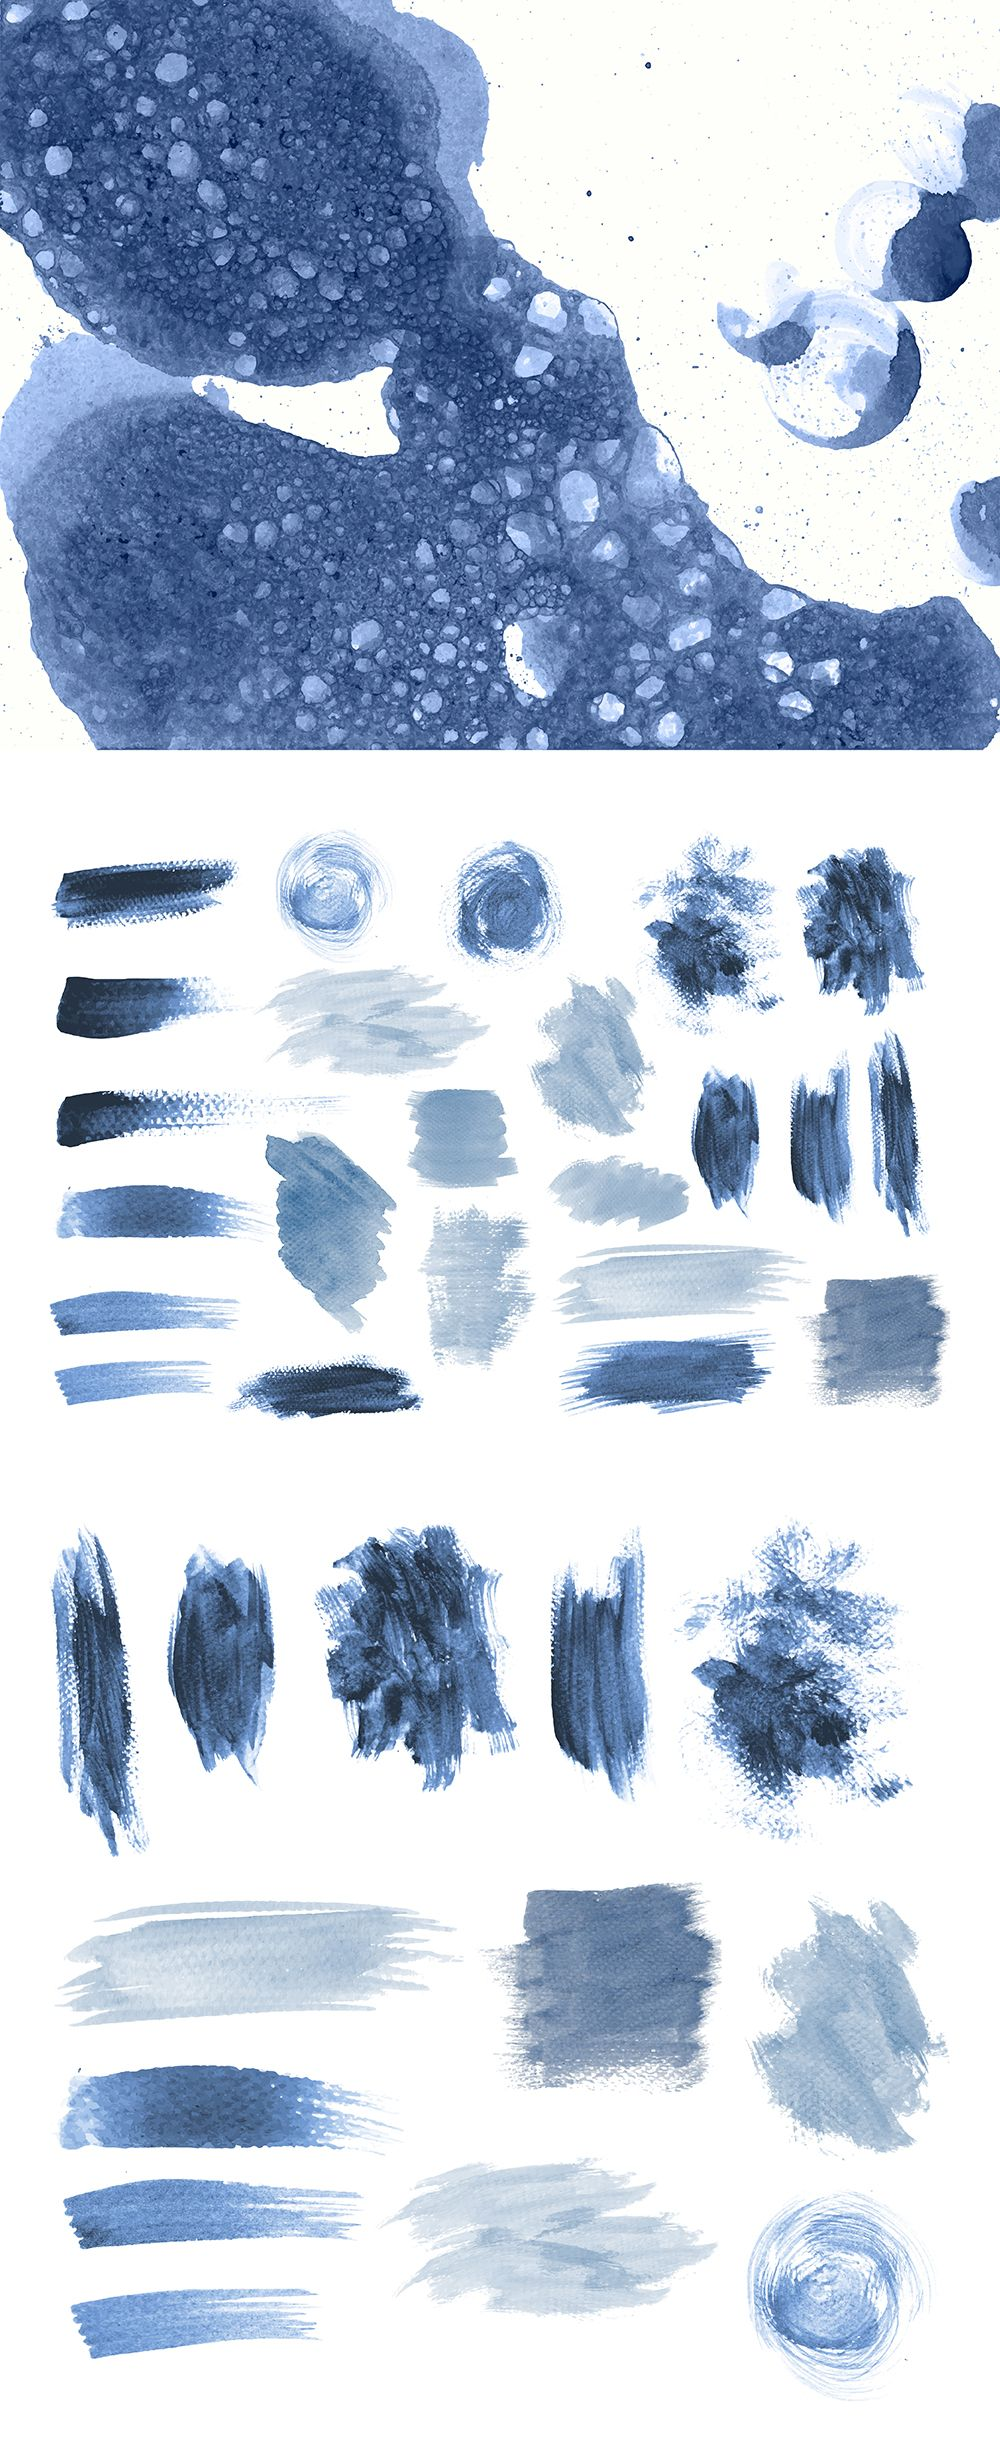 Grab Beautiful Free And Premium Royalty Free Watercolor Brush